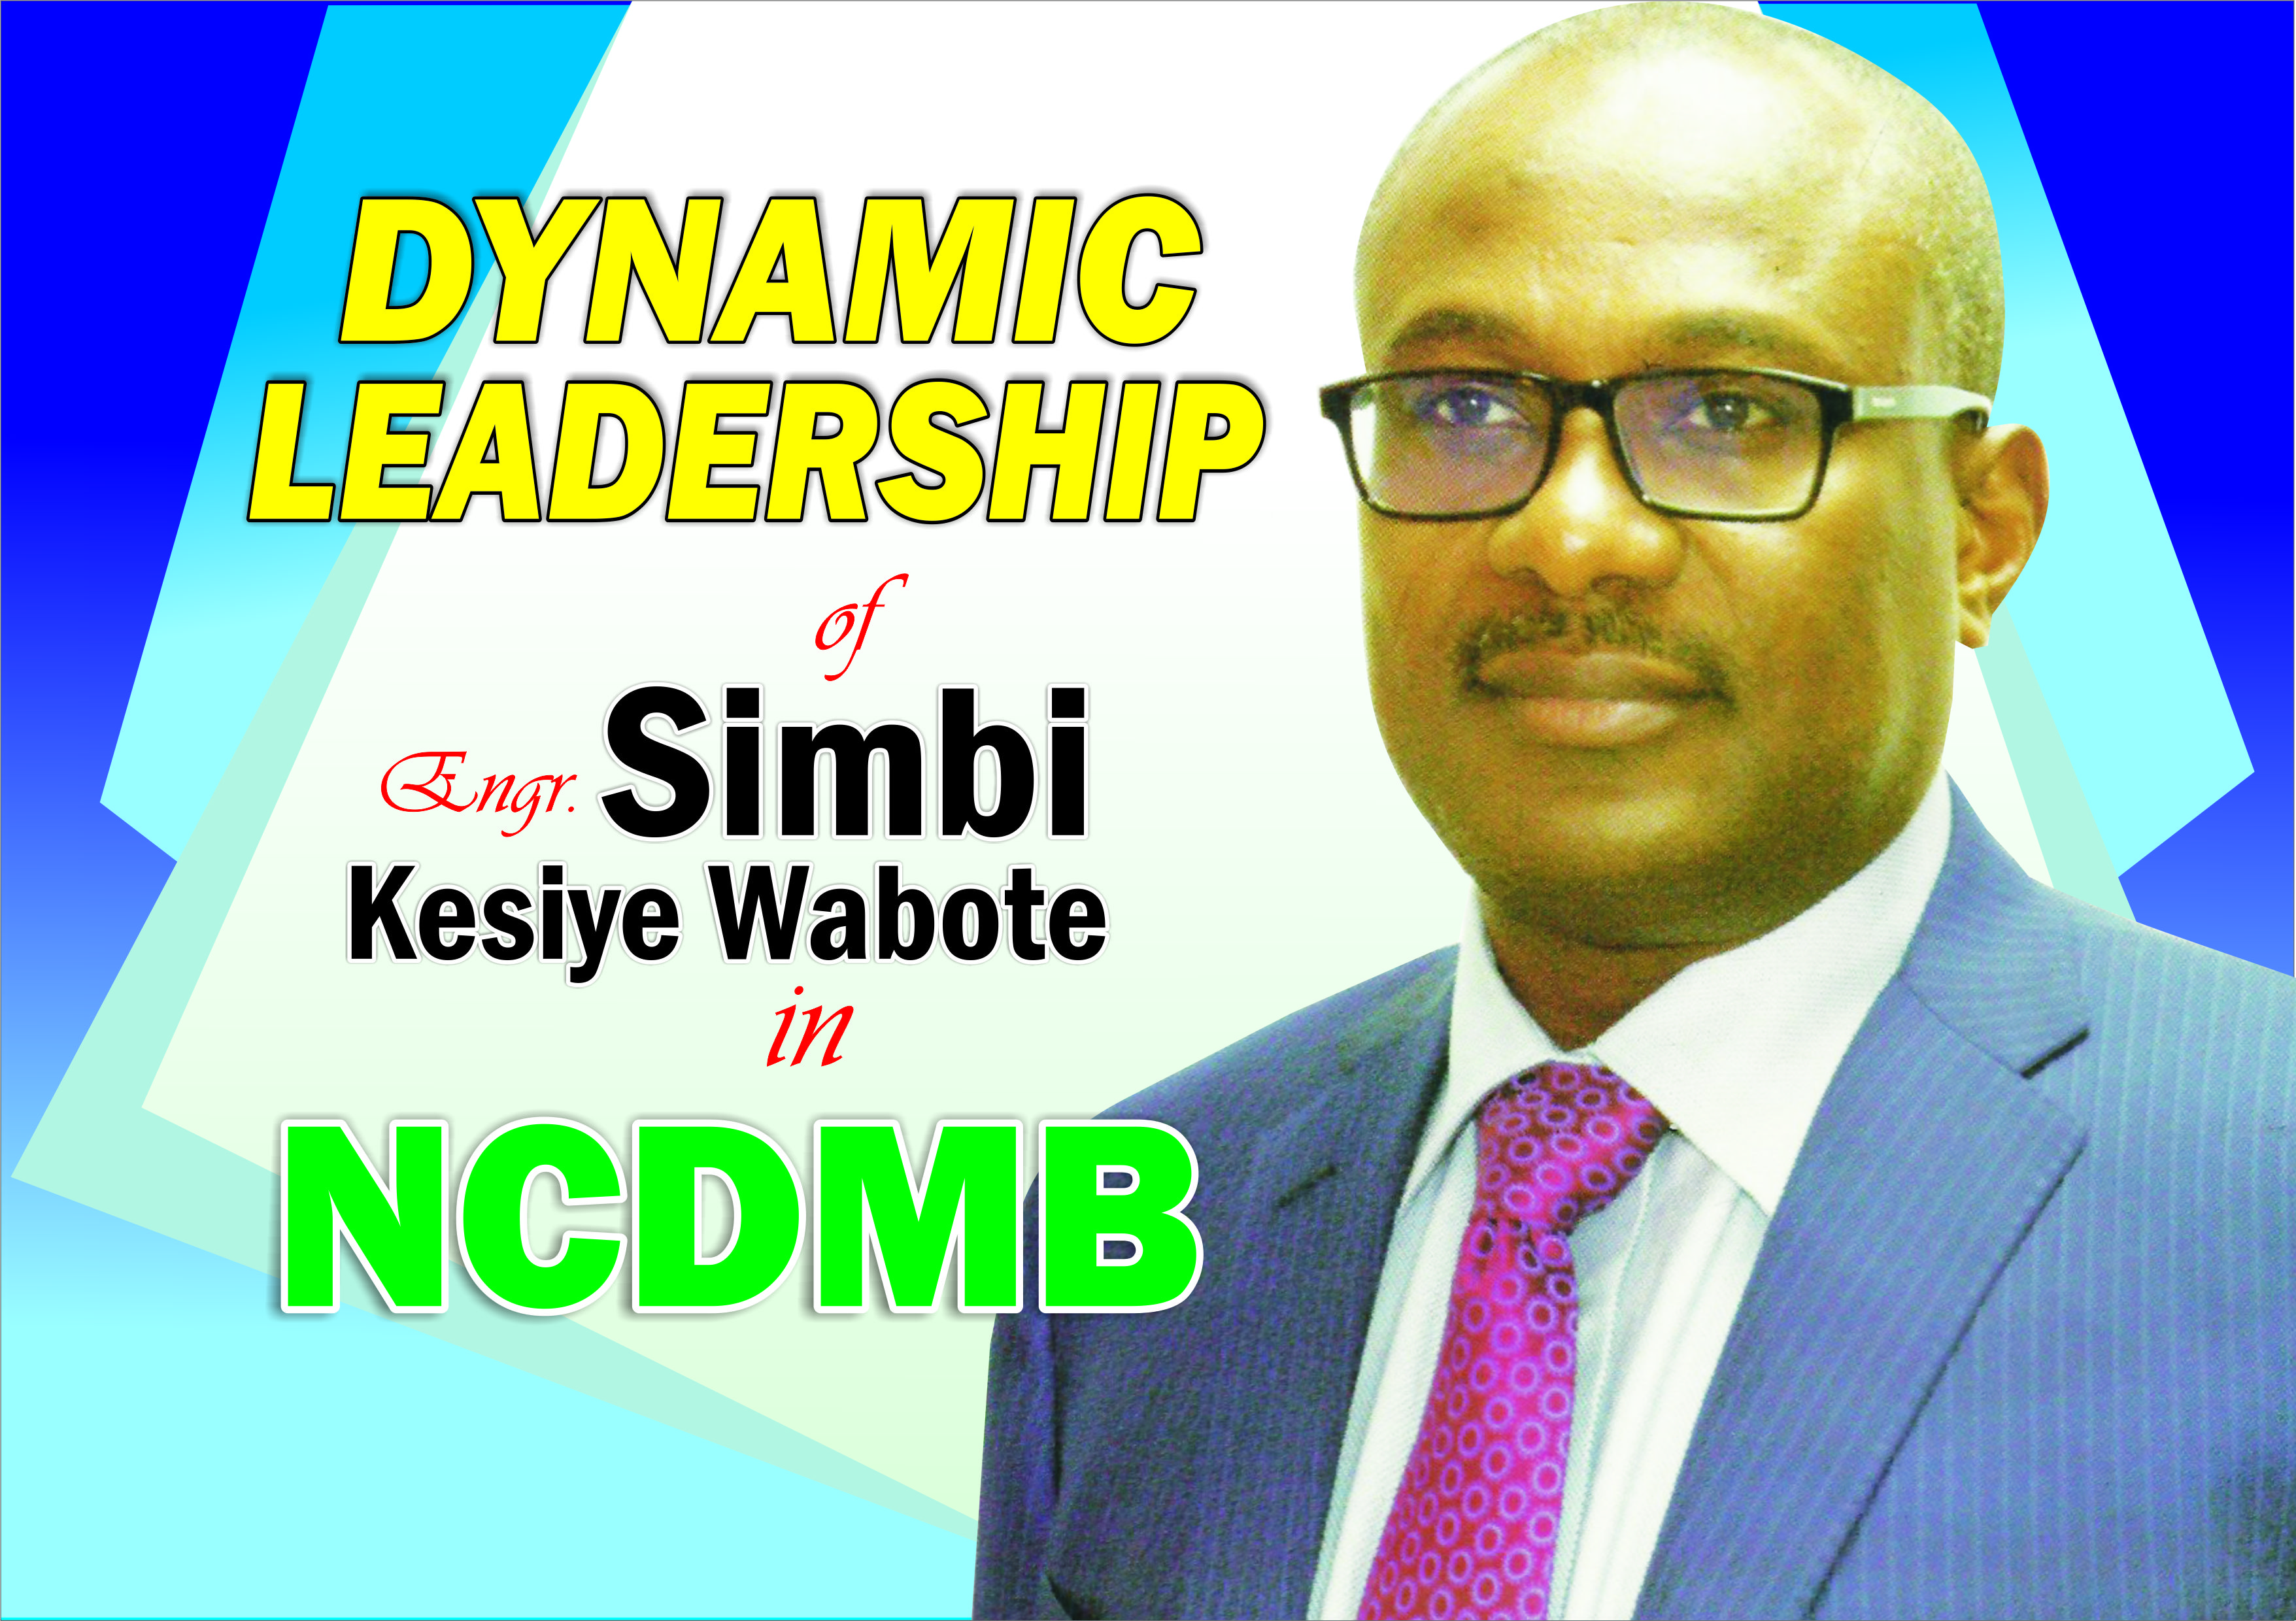 Dynamic Leadership of Engr Simbi Kesiye Wabote in NCDMB